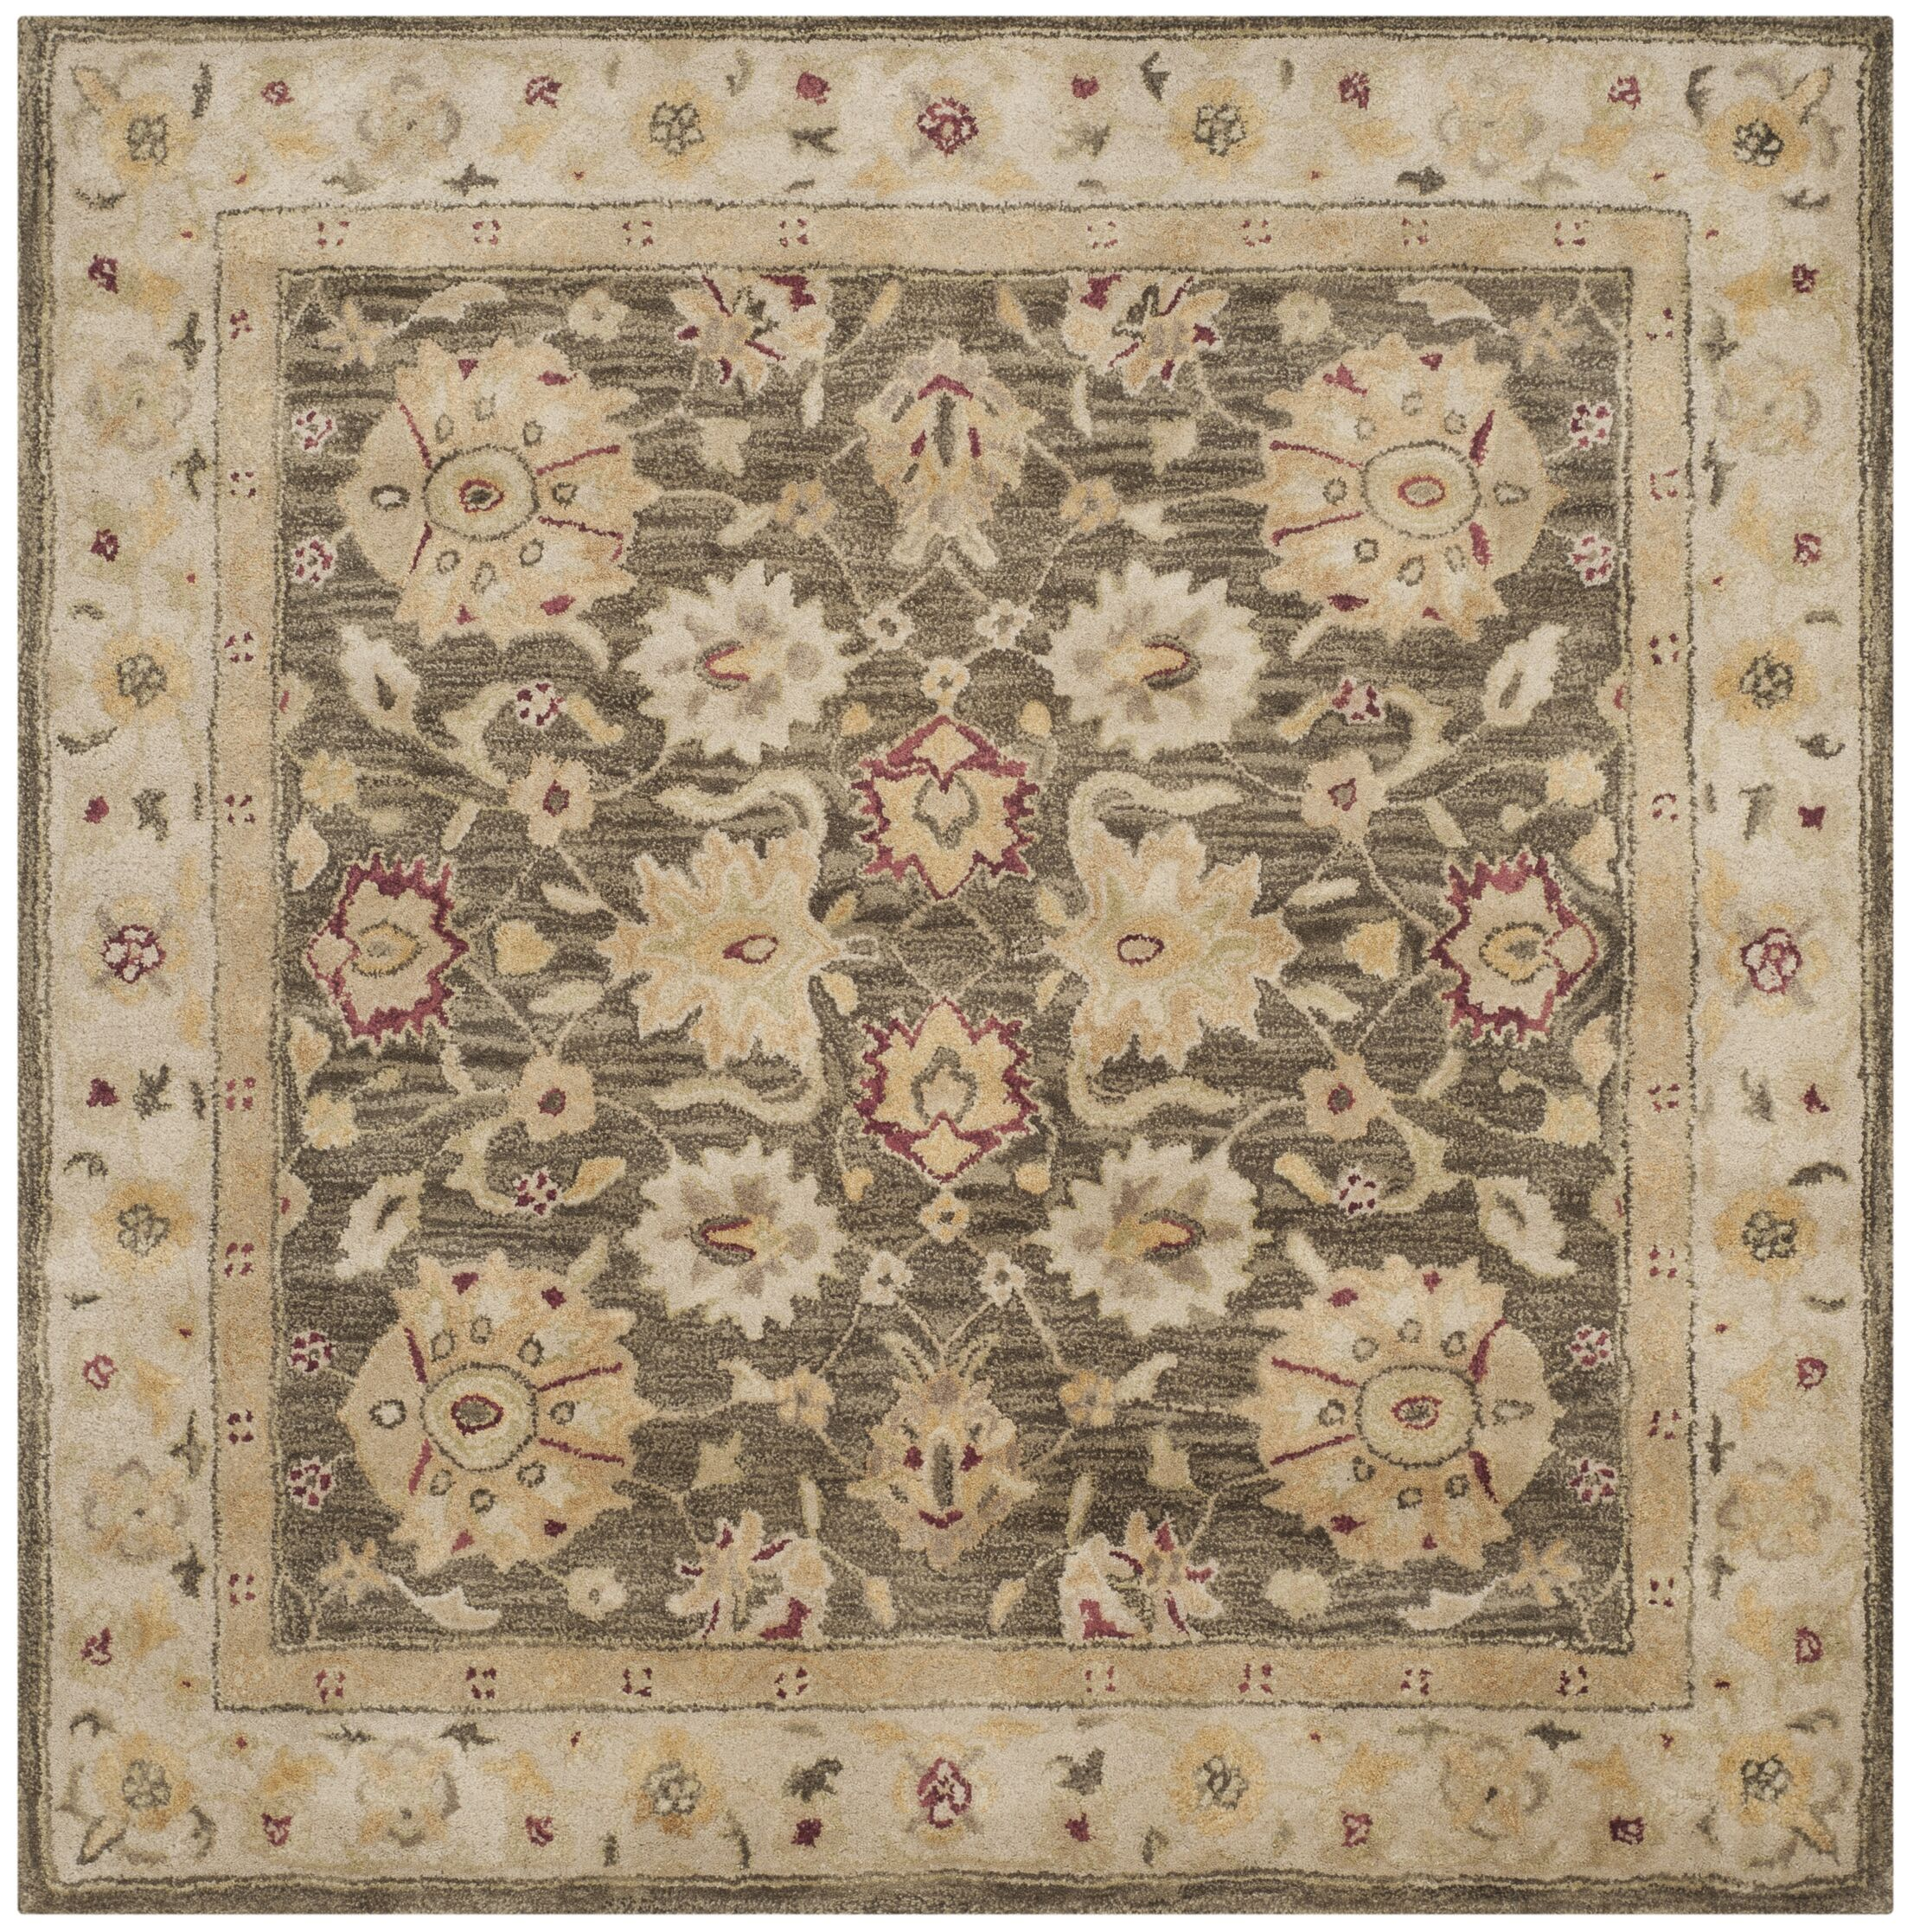 Tinley Hand-Tufted Wool Olive Gray Area Rug Rug Size: Square 6'